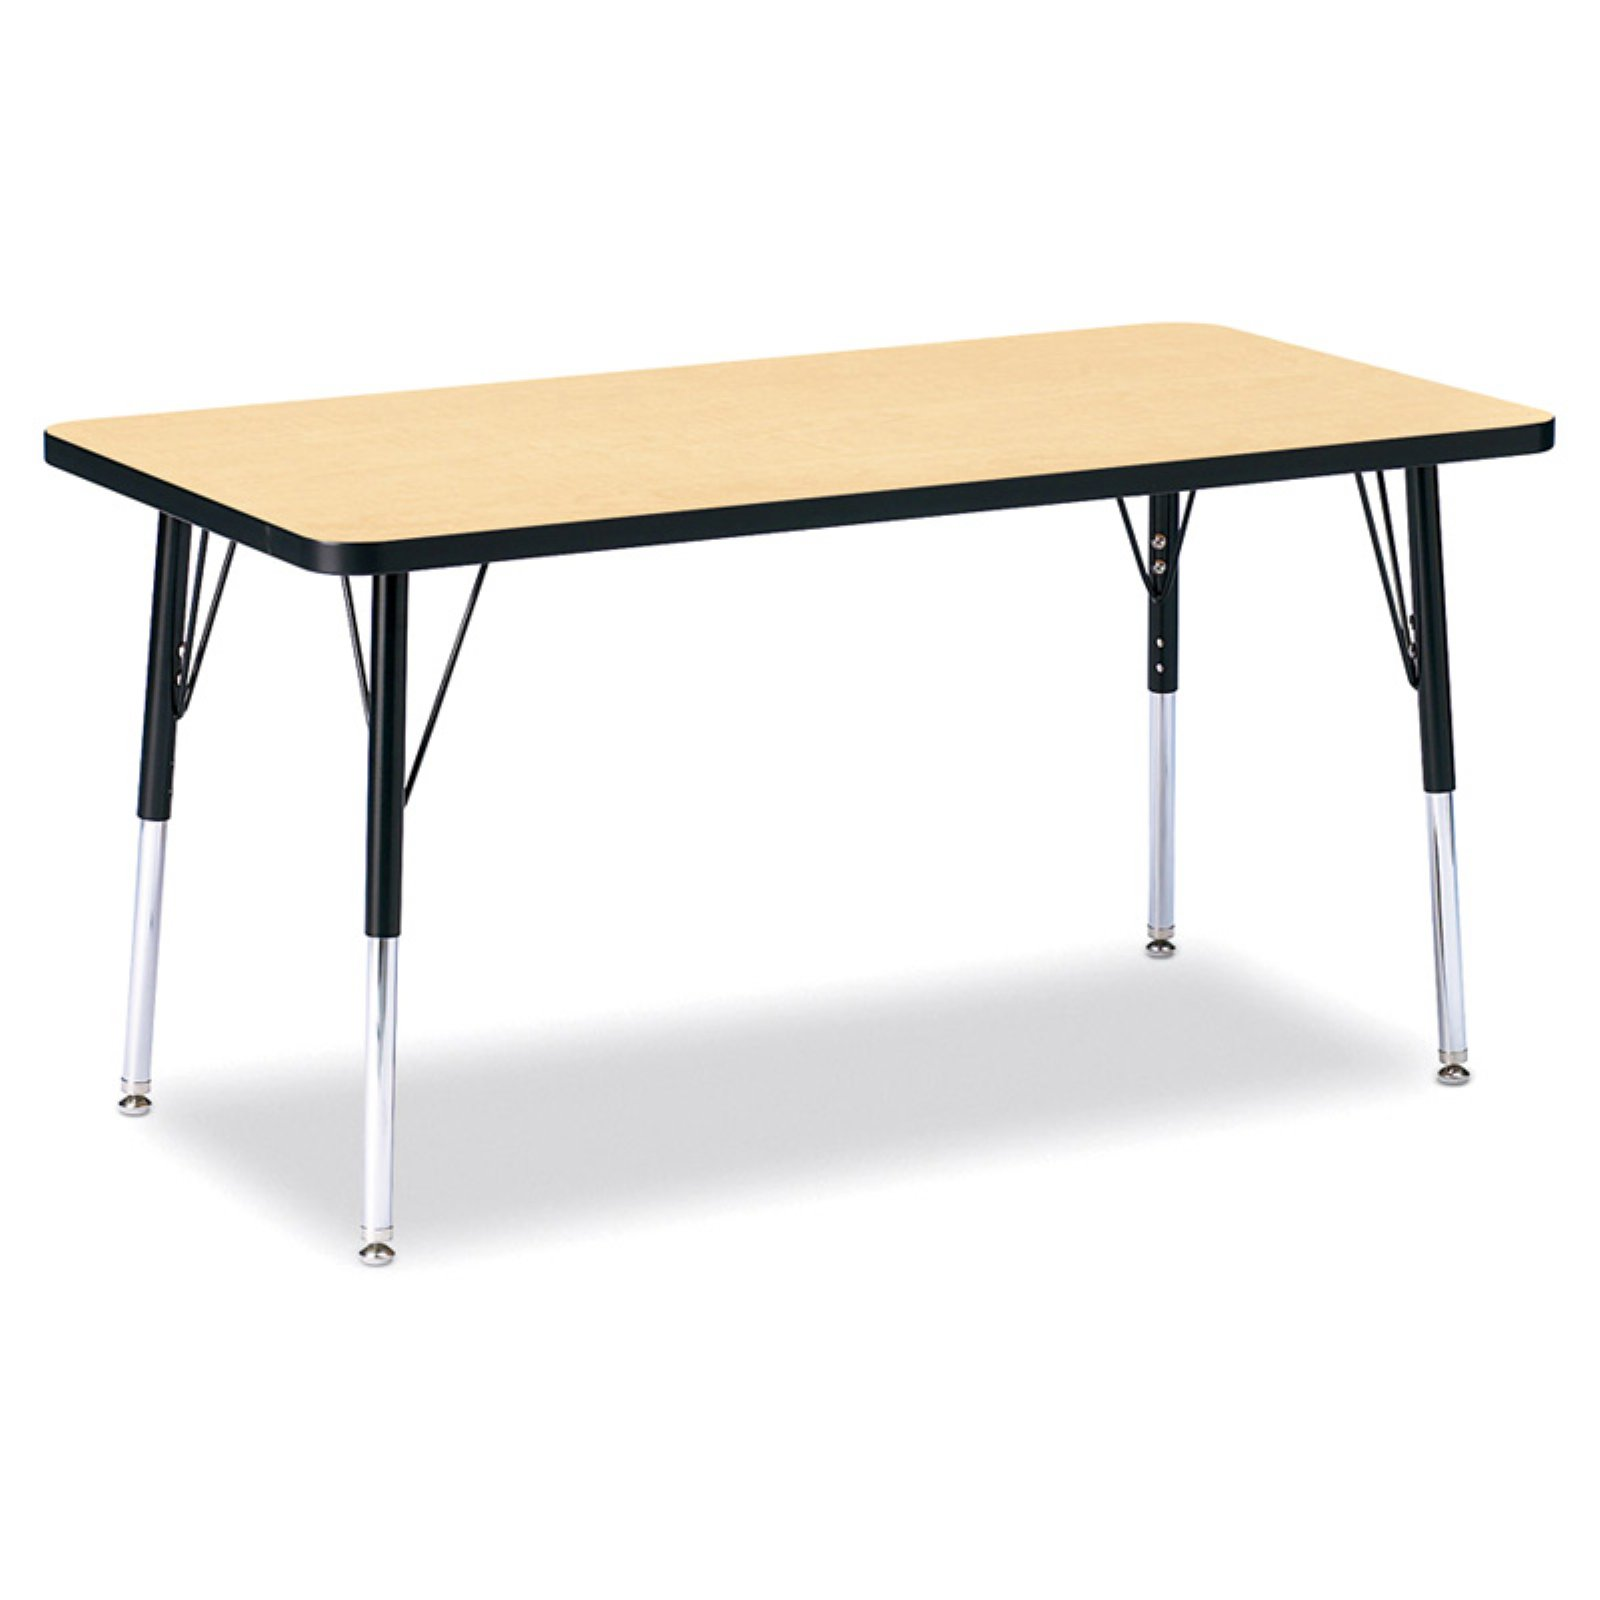 JonTi CrafT Ridgeline Rectangle Activity Table